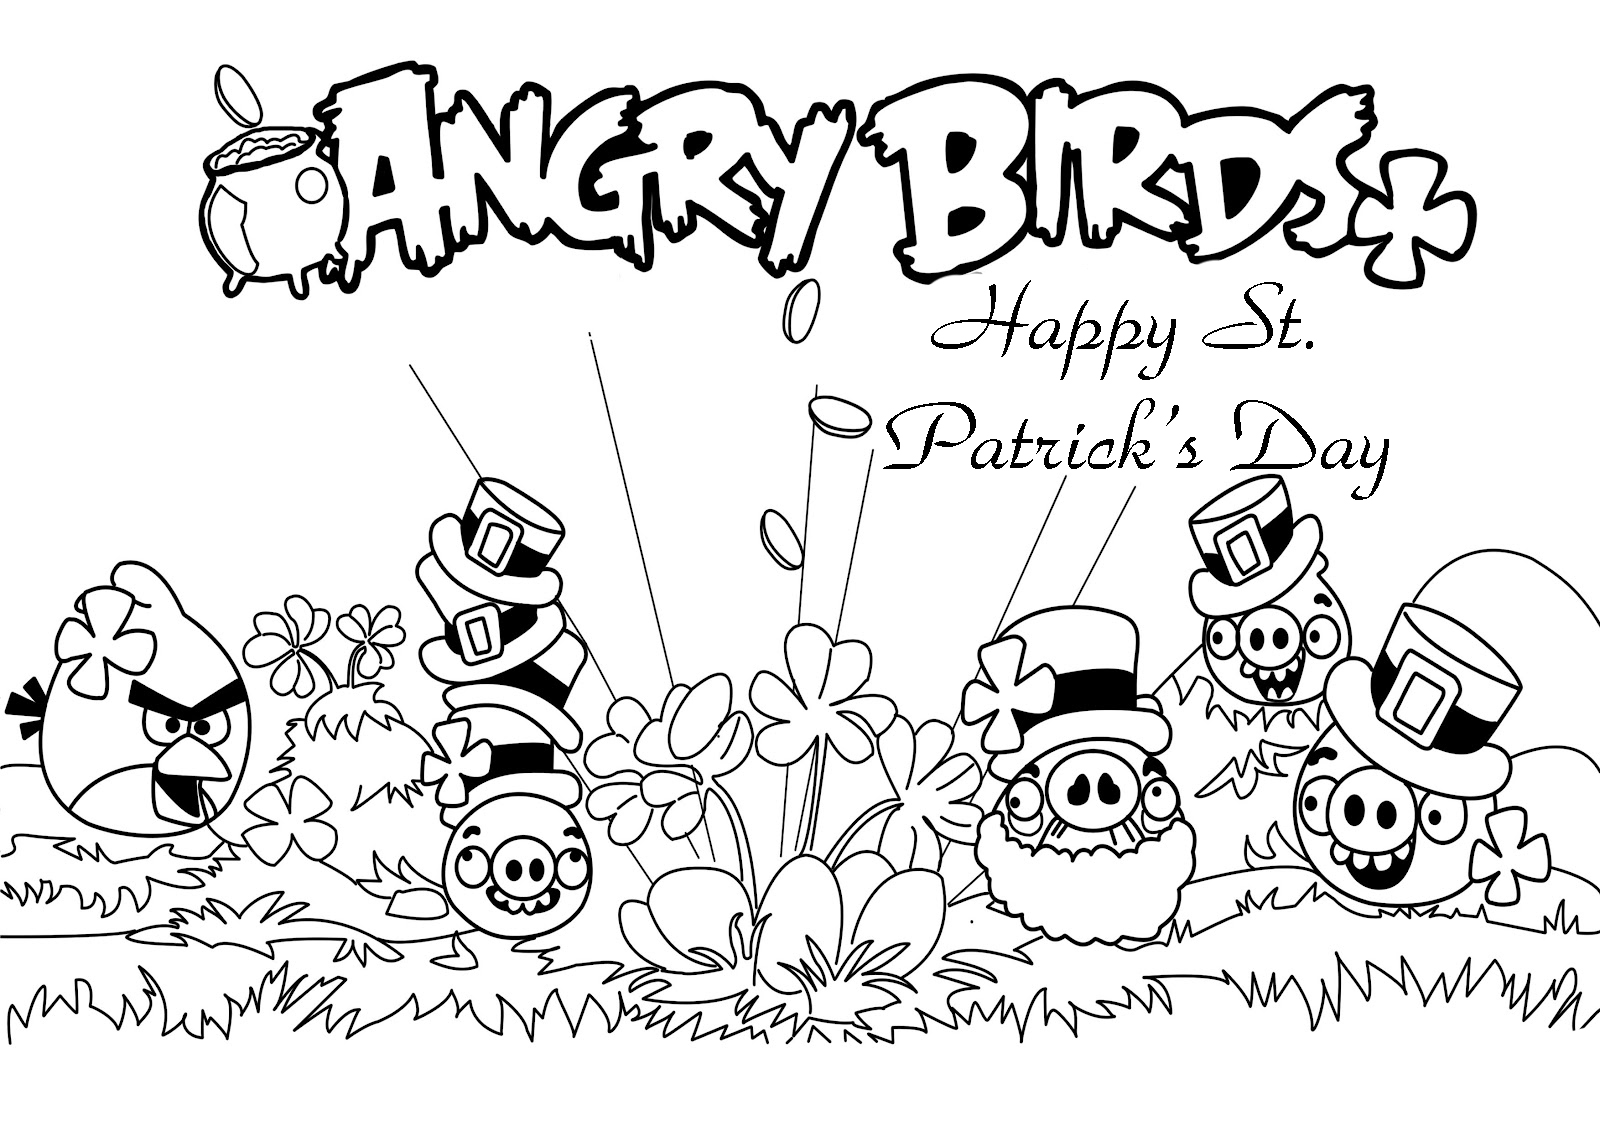 Angry Birds Seasons Coloring Pages - Get Coloring Pages | 1131x1600